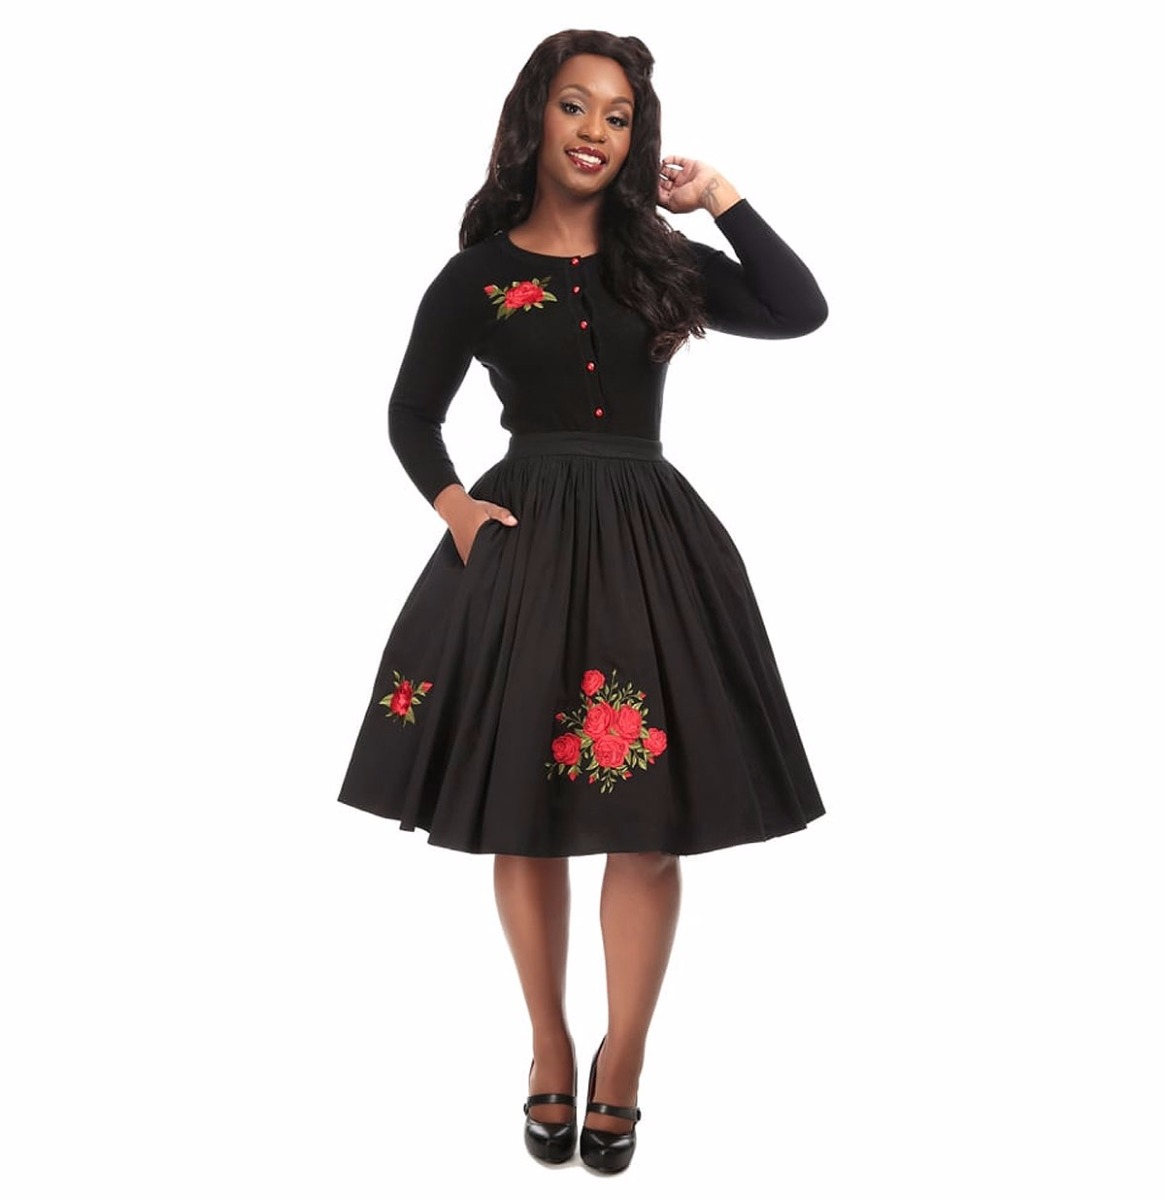 Talis Rose Embroidery Swing Skirt